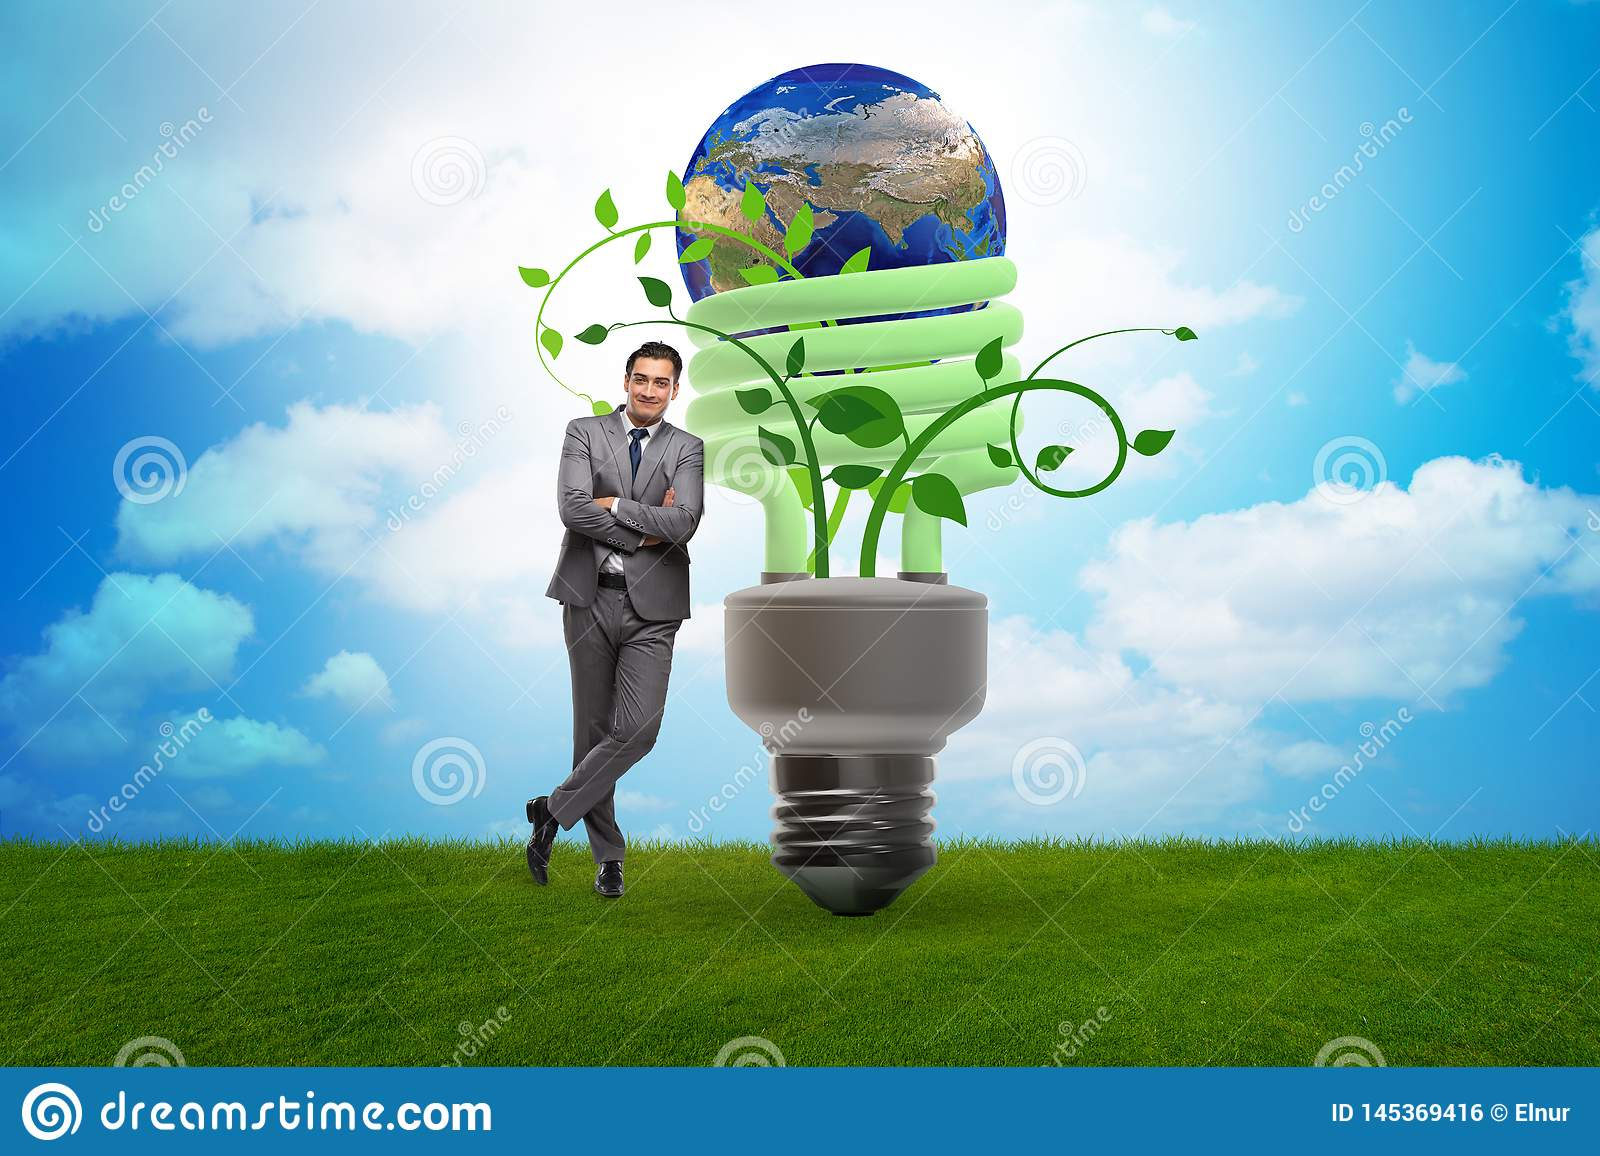 The concept of energy efficiency with lightbulb